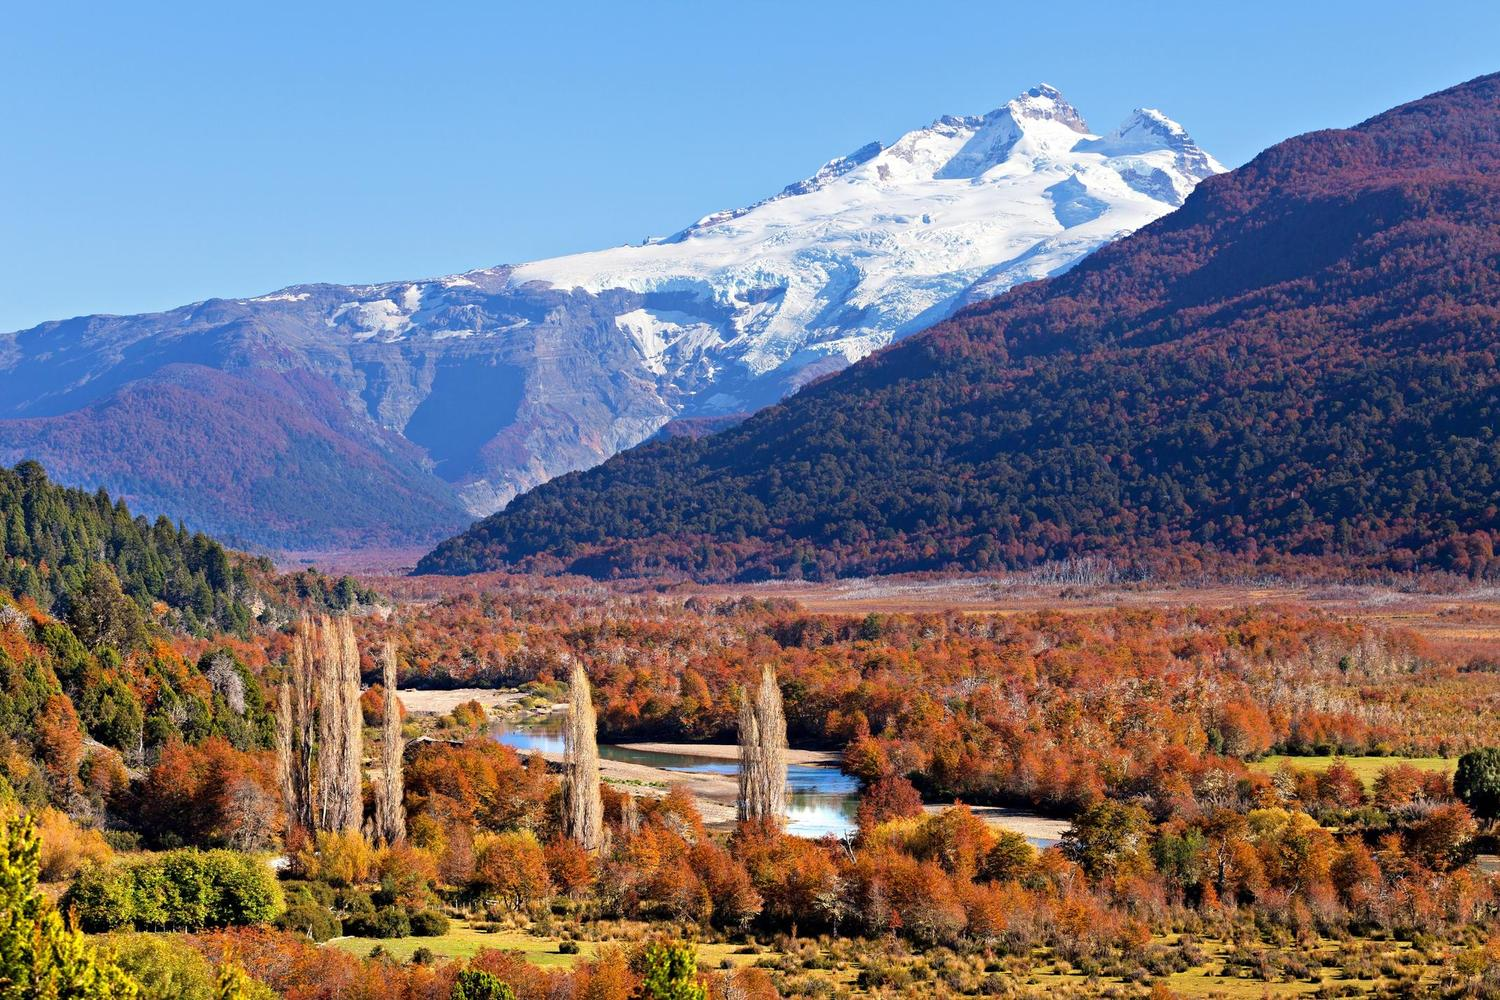 The distinctive peak of Tronador mountain, Bariloche